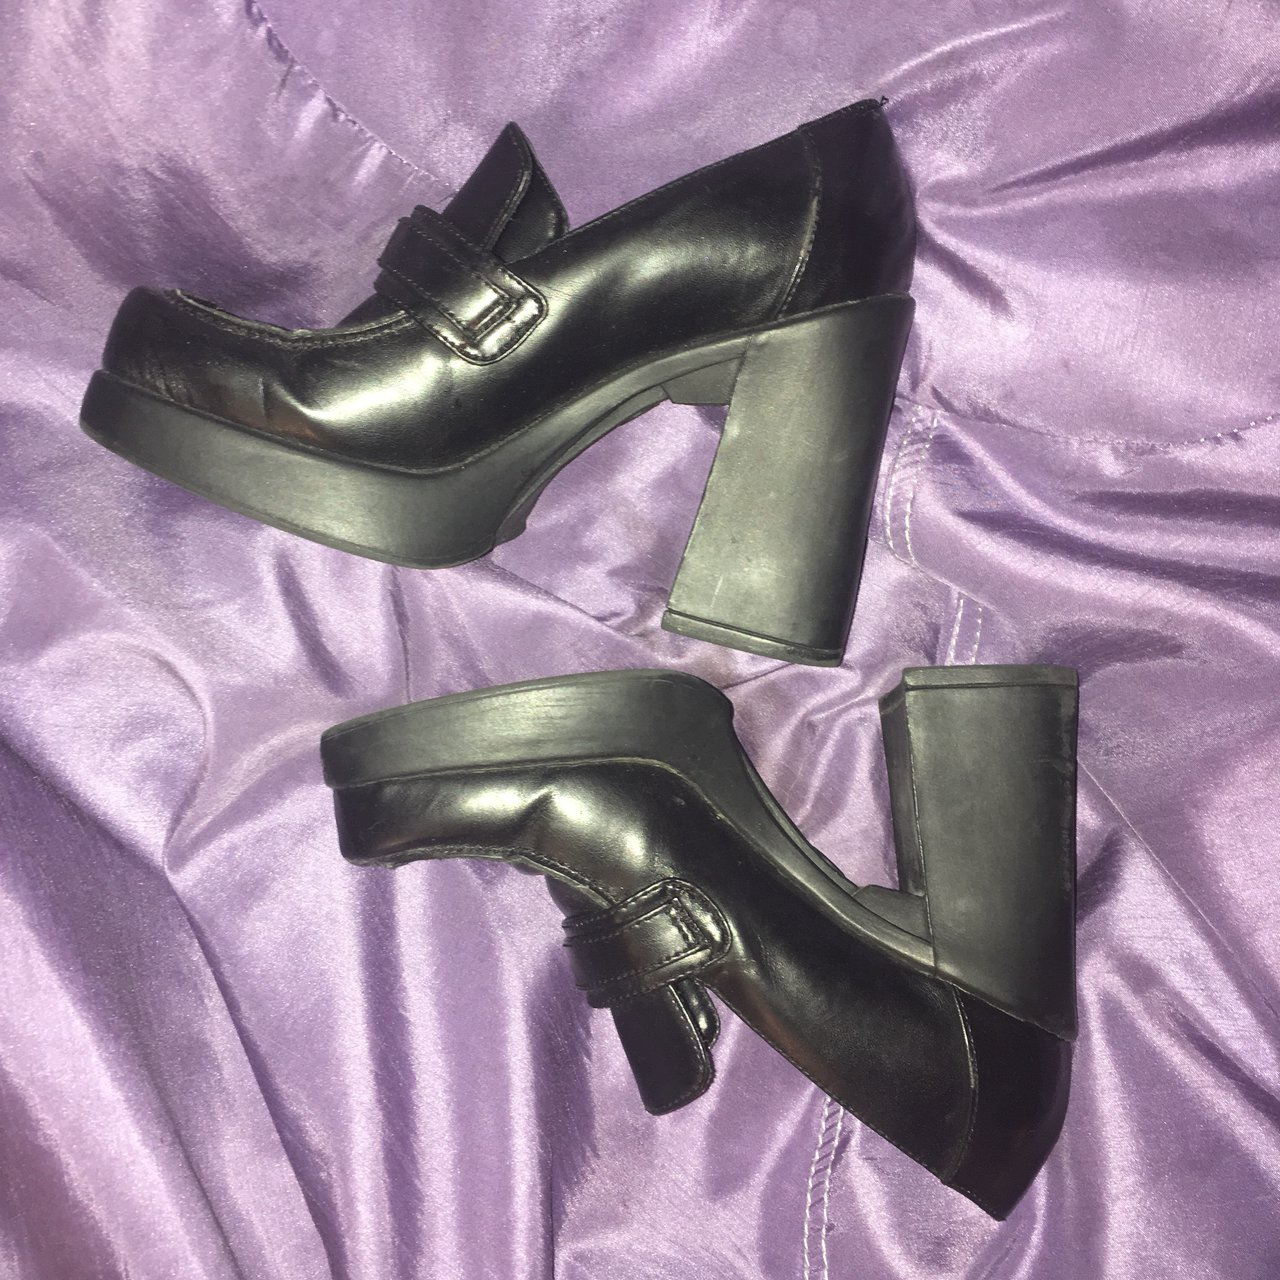 7885b6bec42  rachelbalisa16. 10 months ago. United States. 90s Goth Grunge Chunky  Platforms💔 These are super cute ...